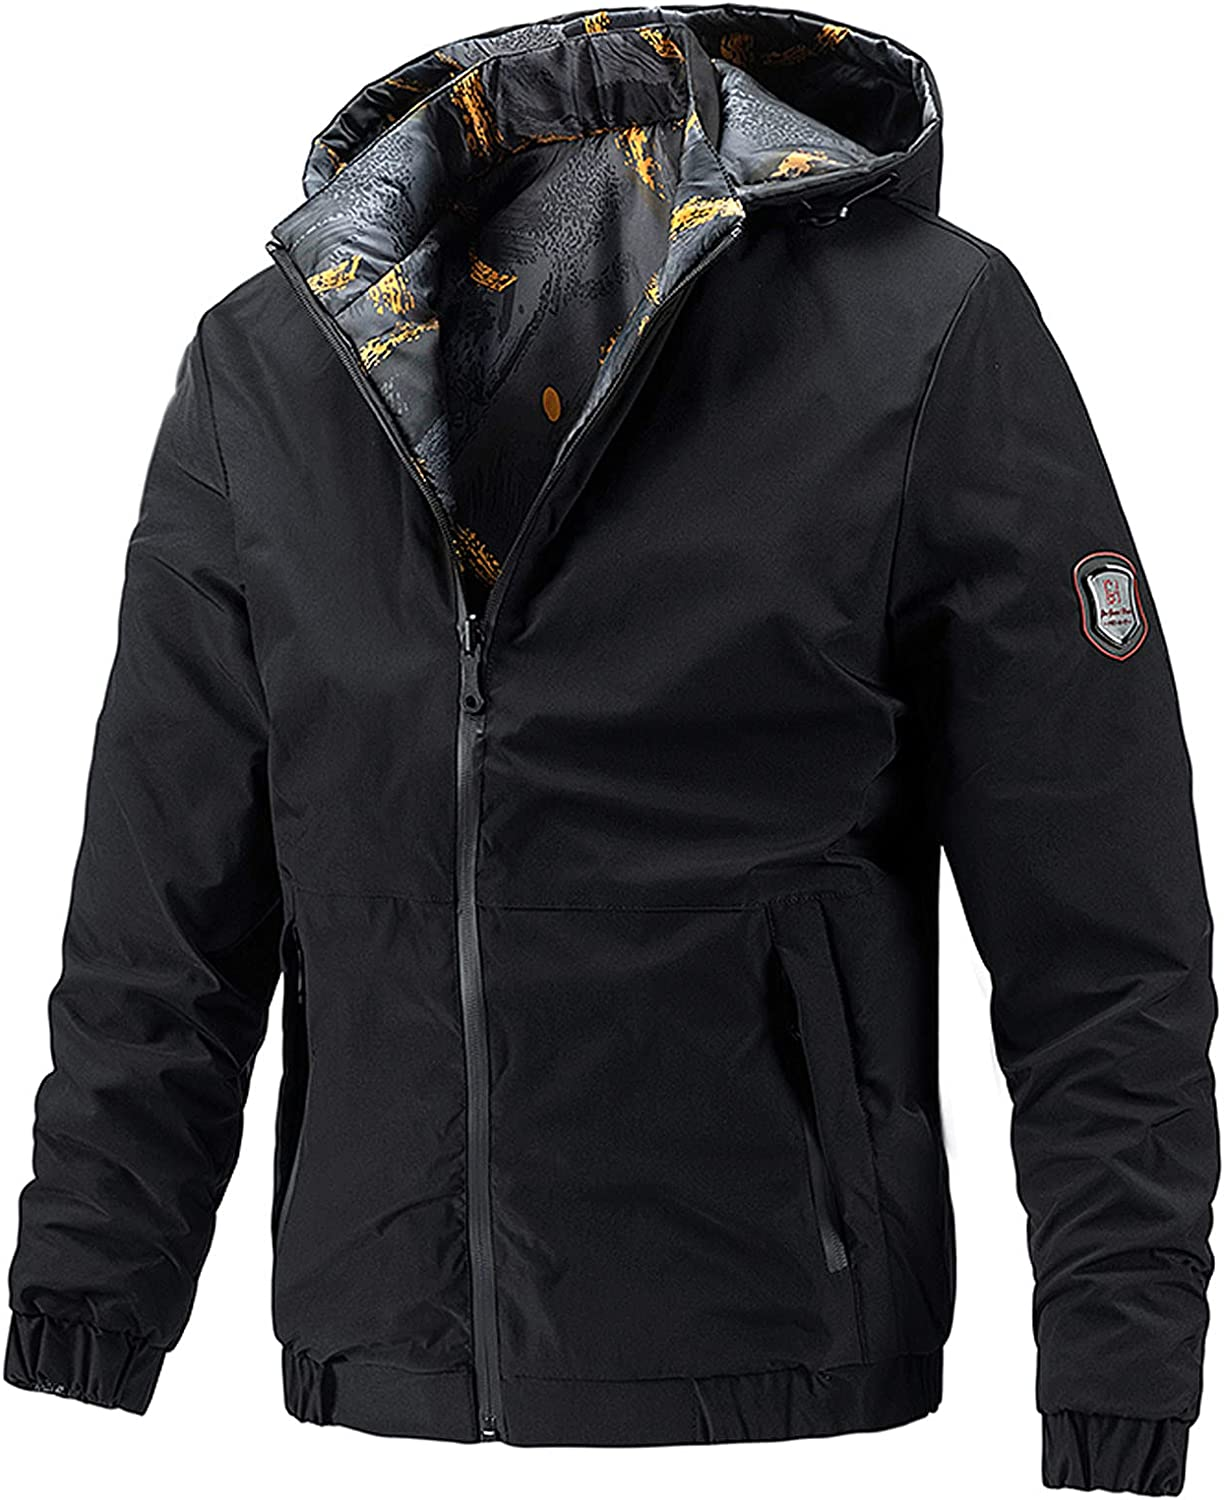 Men Casual Autumn&Winter Wear On Both Sides Pockets Coats Hooded Blouse Jacket